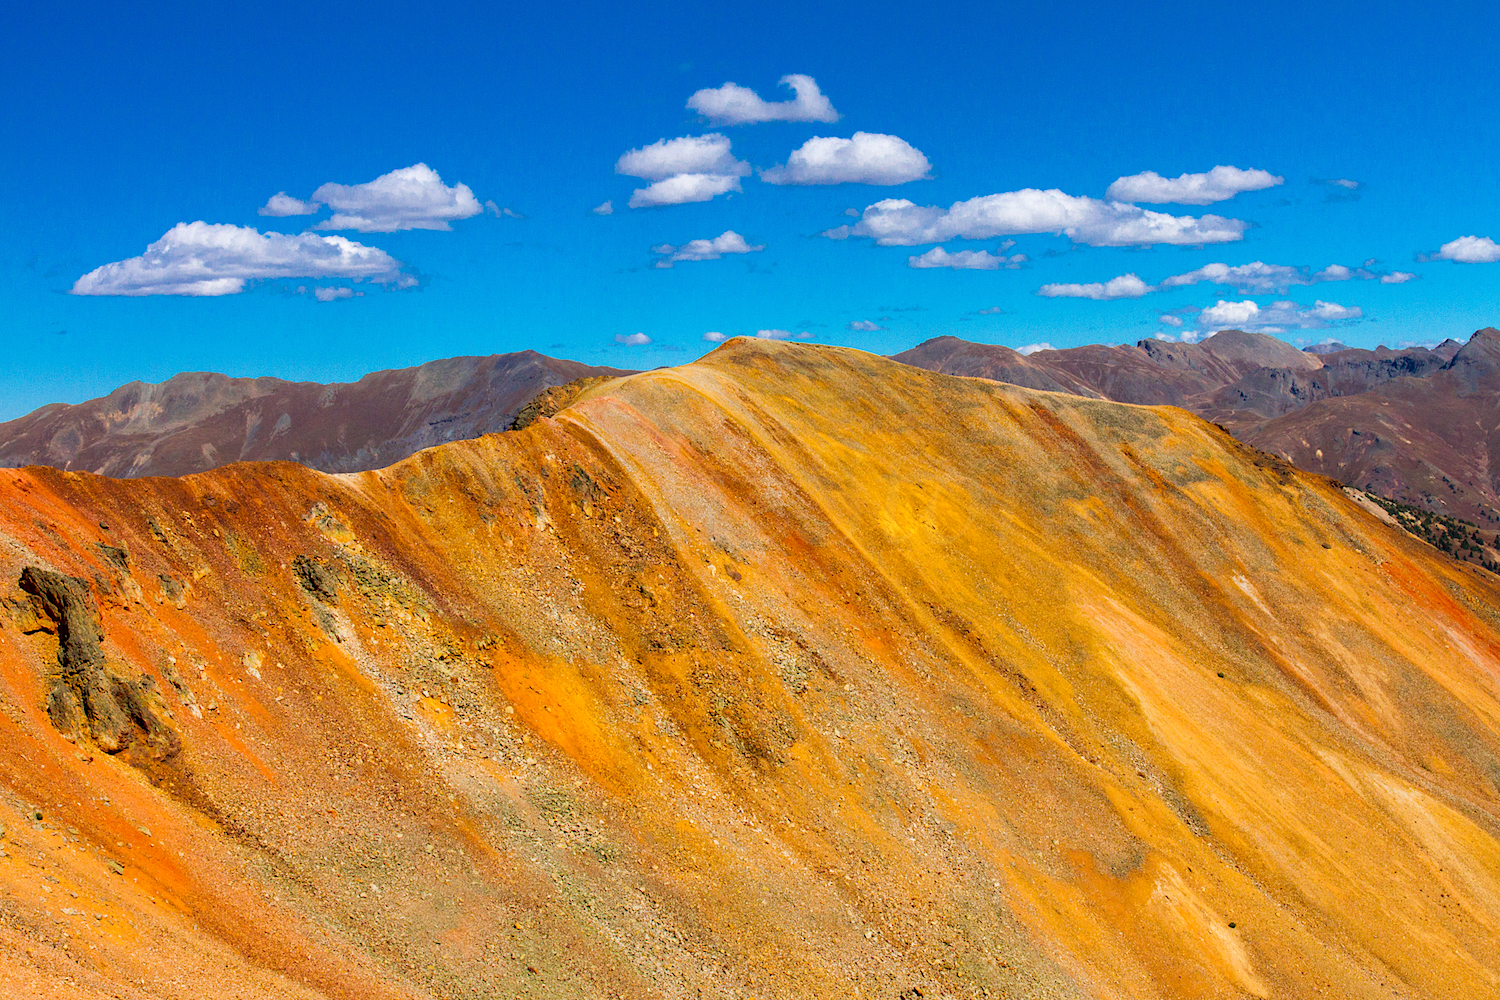 Red Mountain #3, Image # 6093